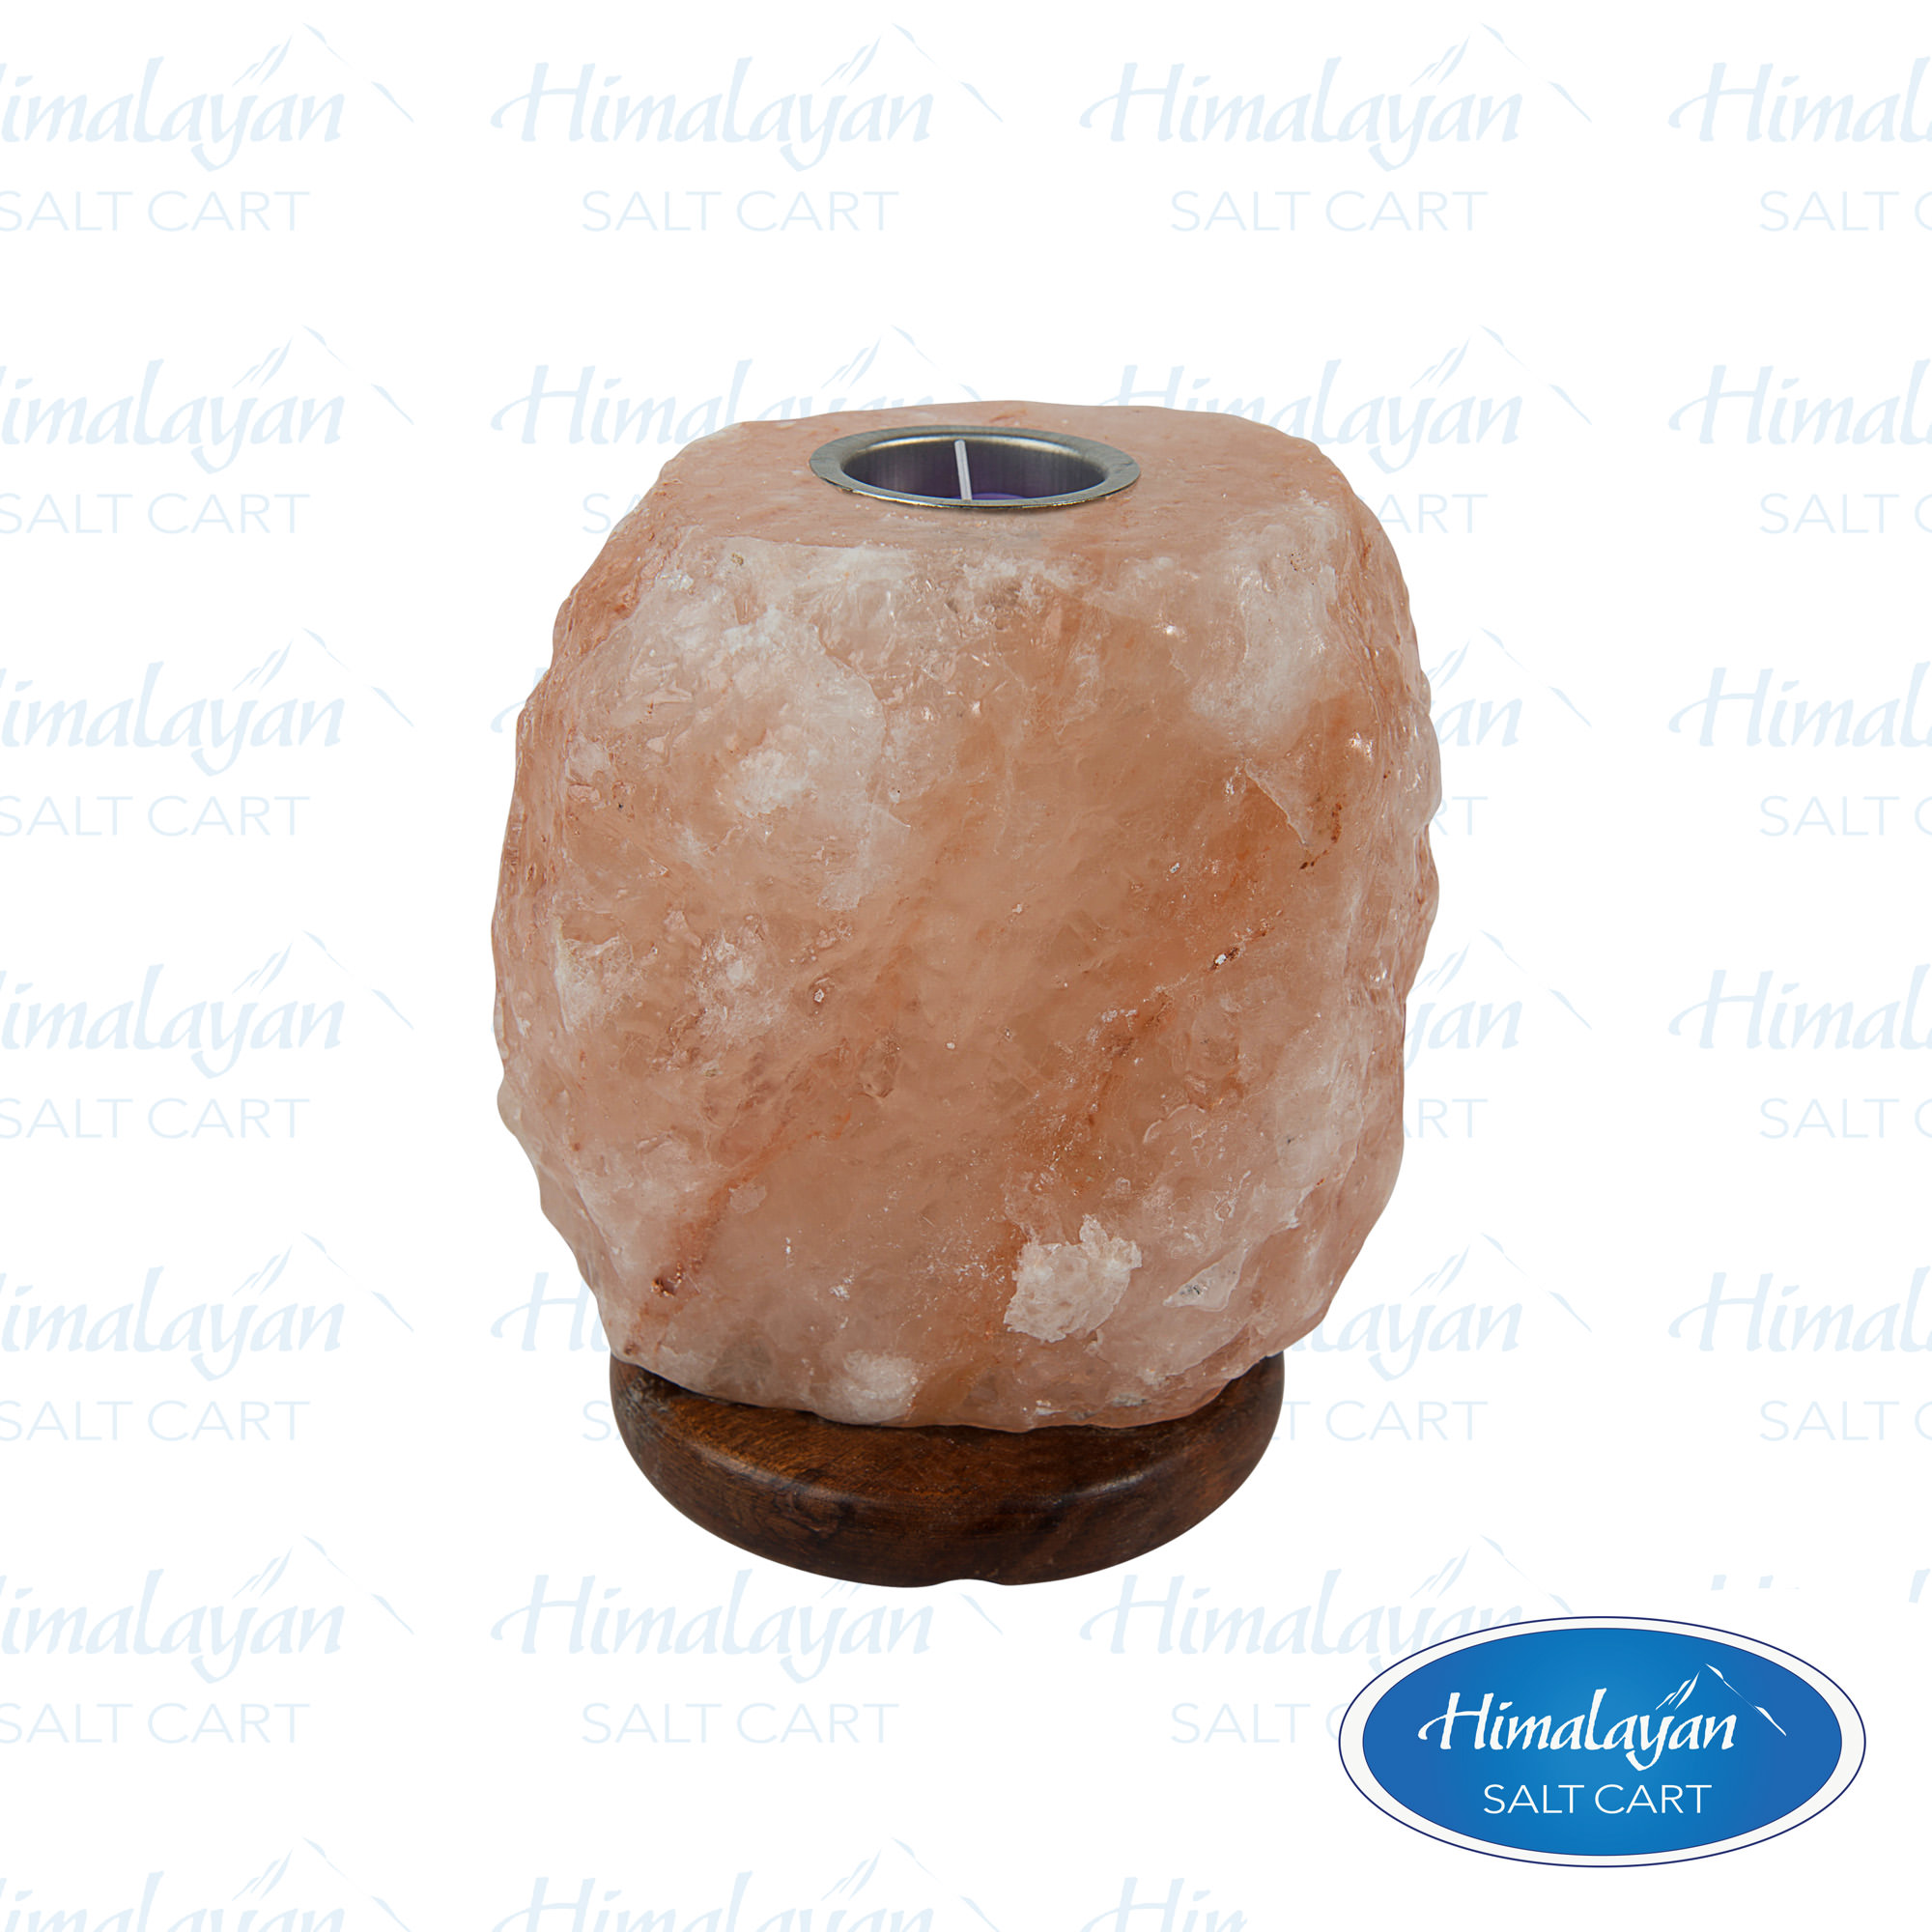 Himalayan Salt Lamps Georgia : Natural Cut Himalayan Salt Lamps : Himalayan Salt Medium 9 - 11 lb. Aromatherapy Lamp